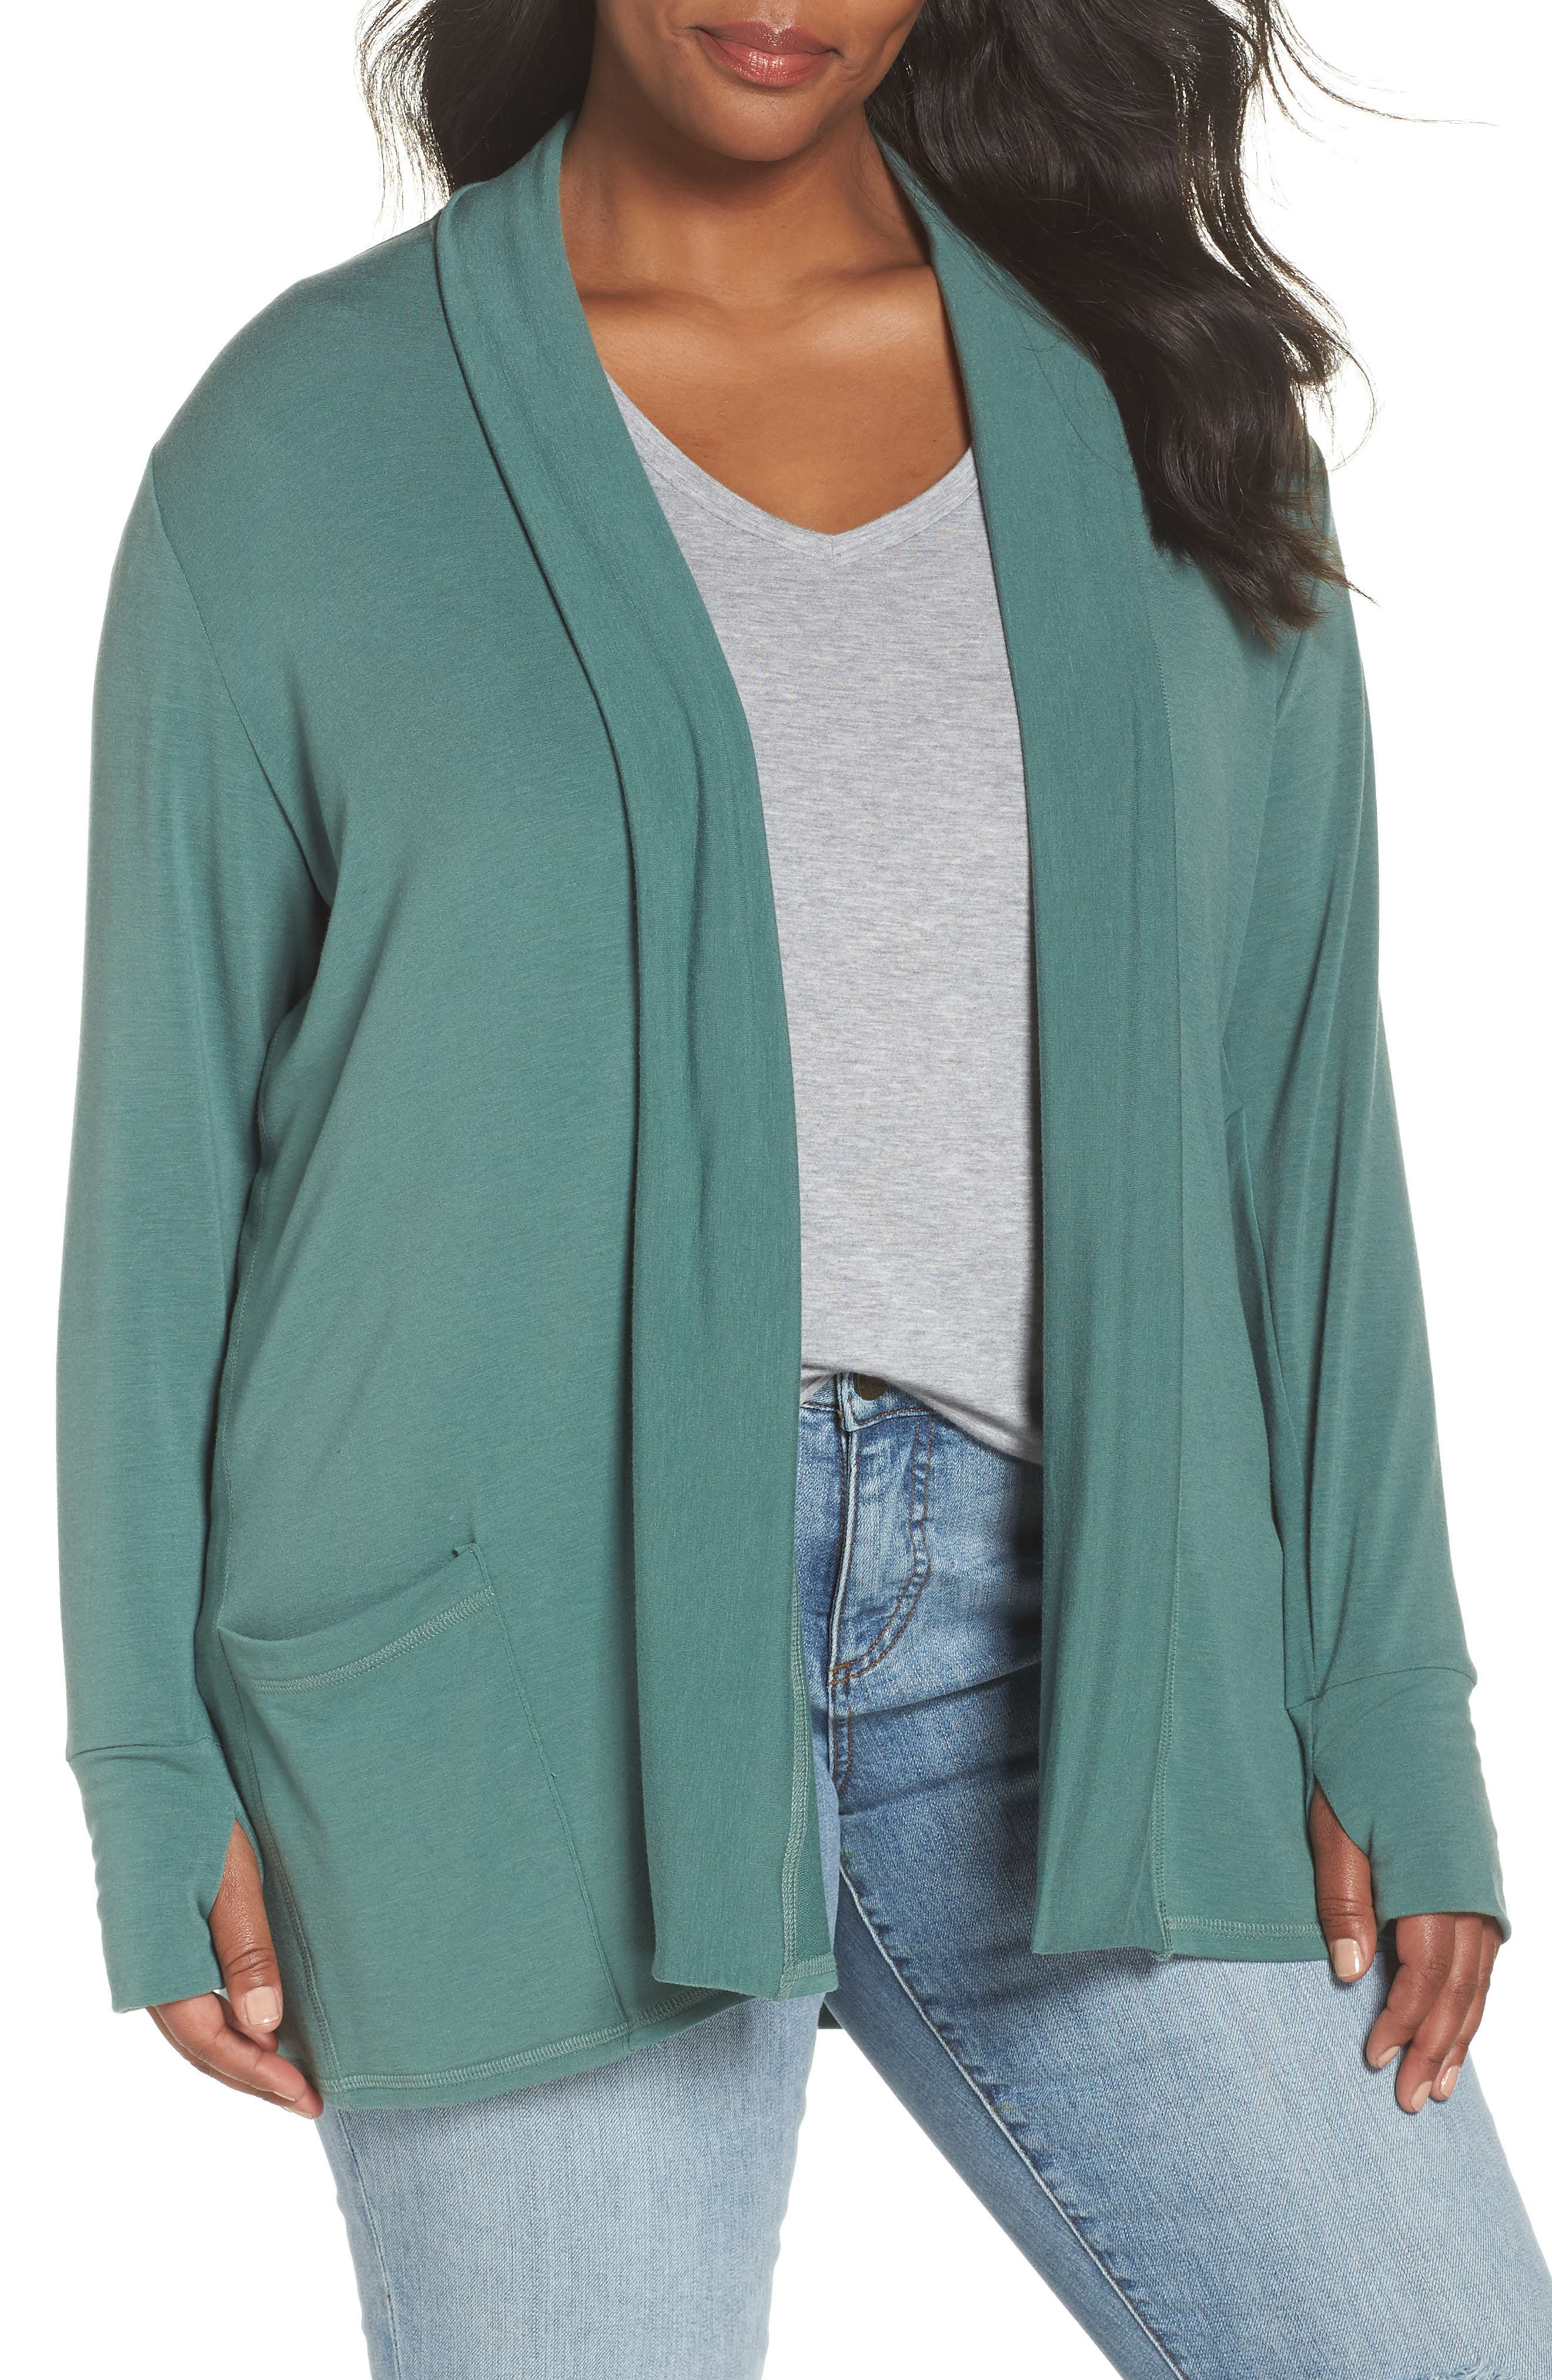 Off-Duty French Terry Cardigan,                         Main,                         color, 310